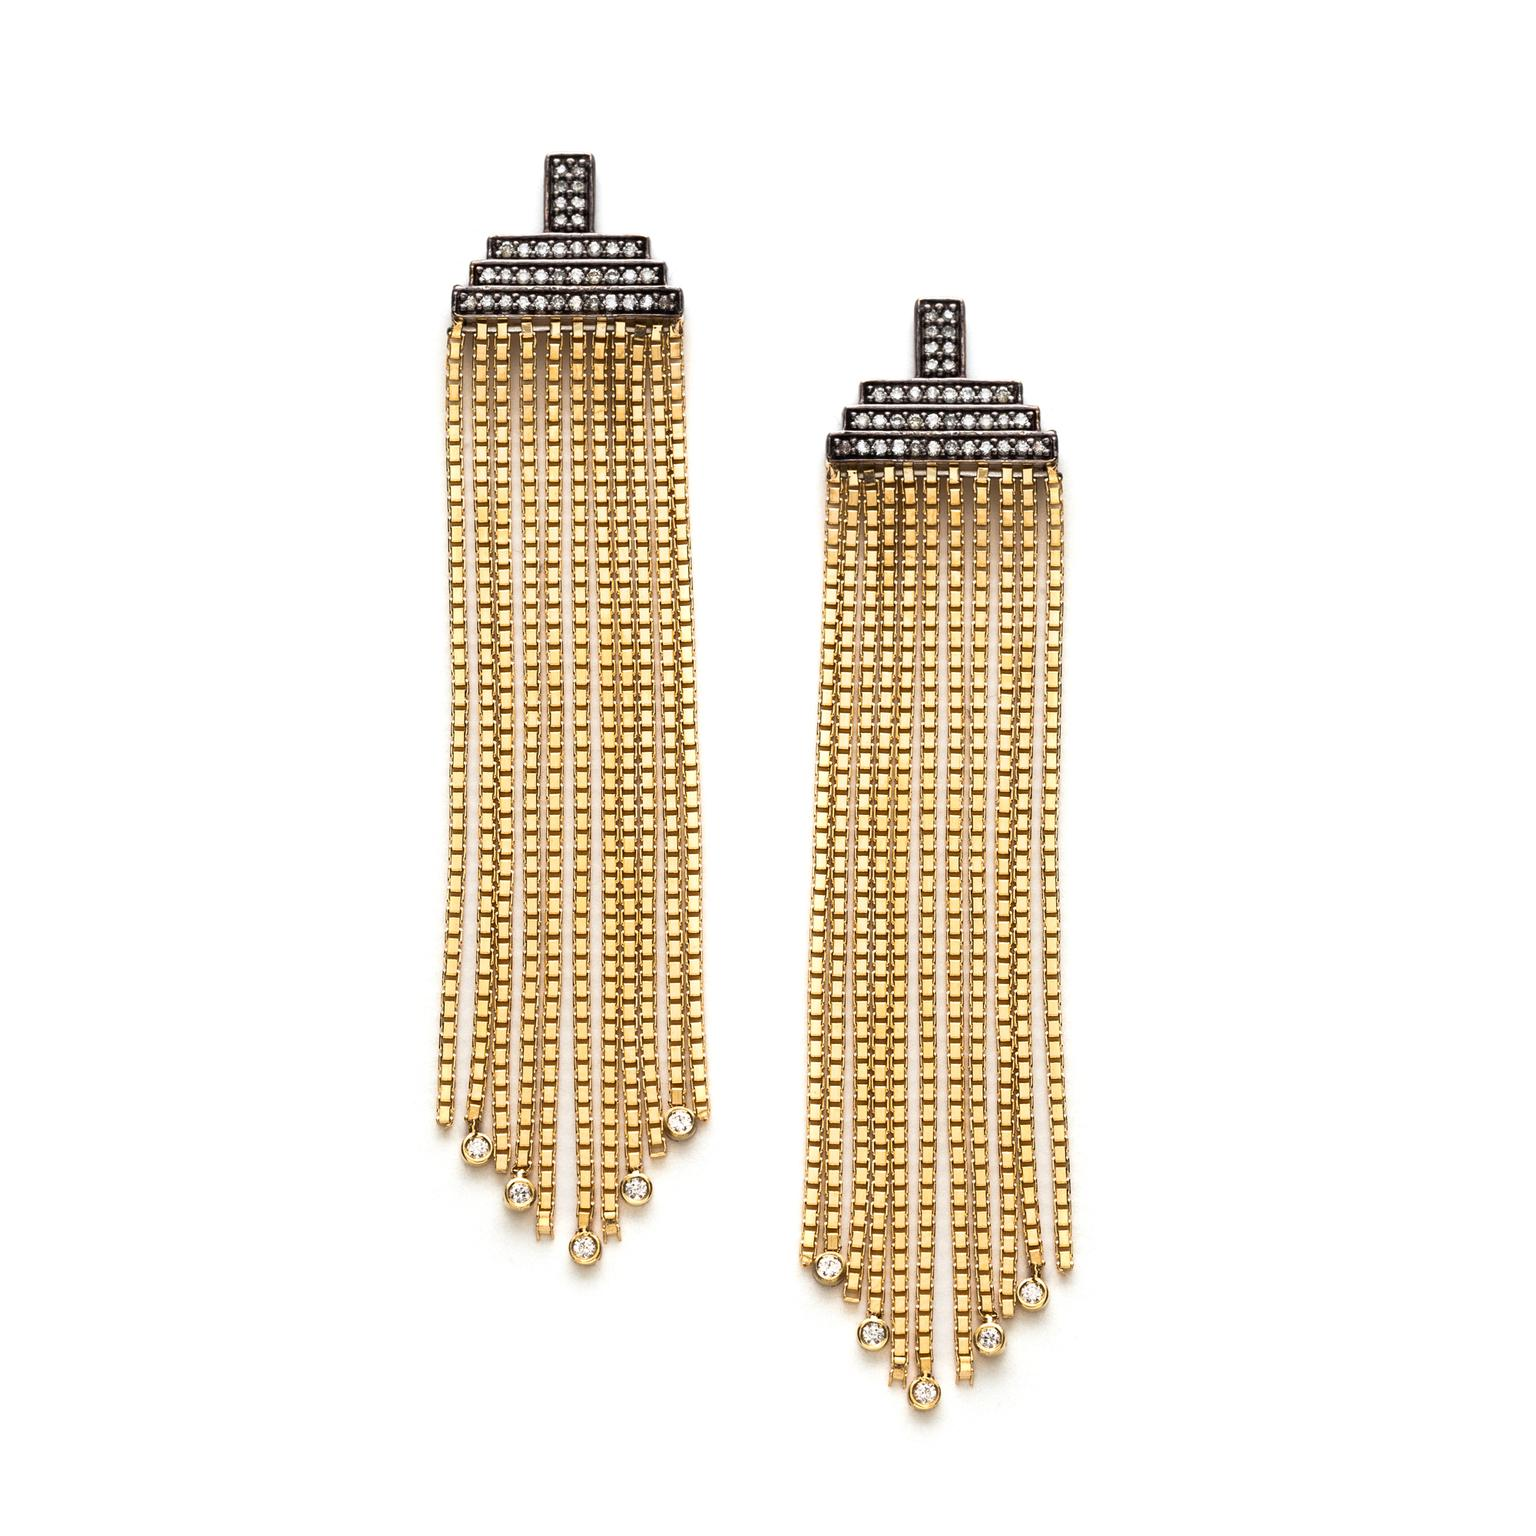 Sorellina fringe earrings